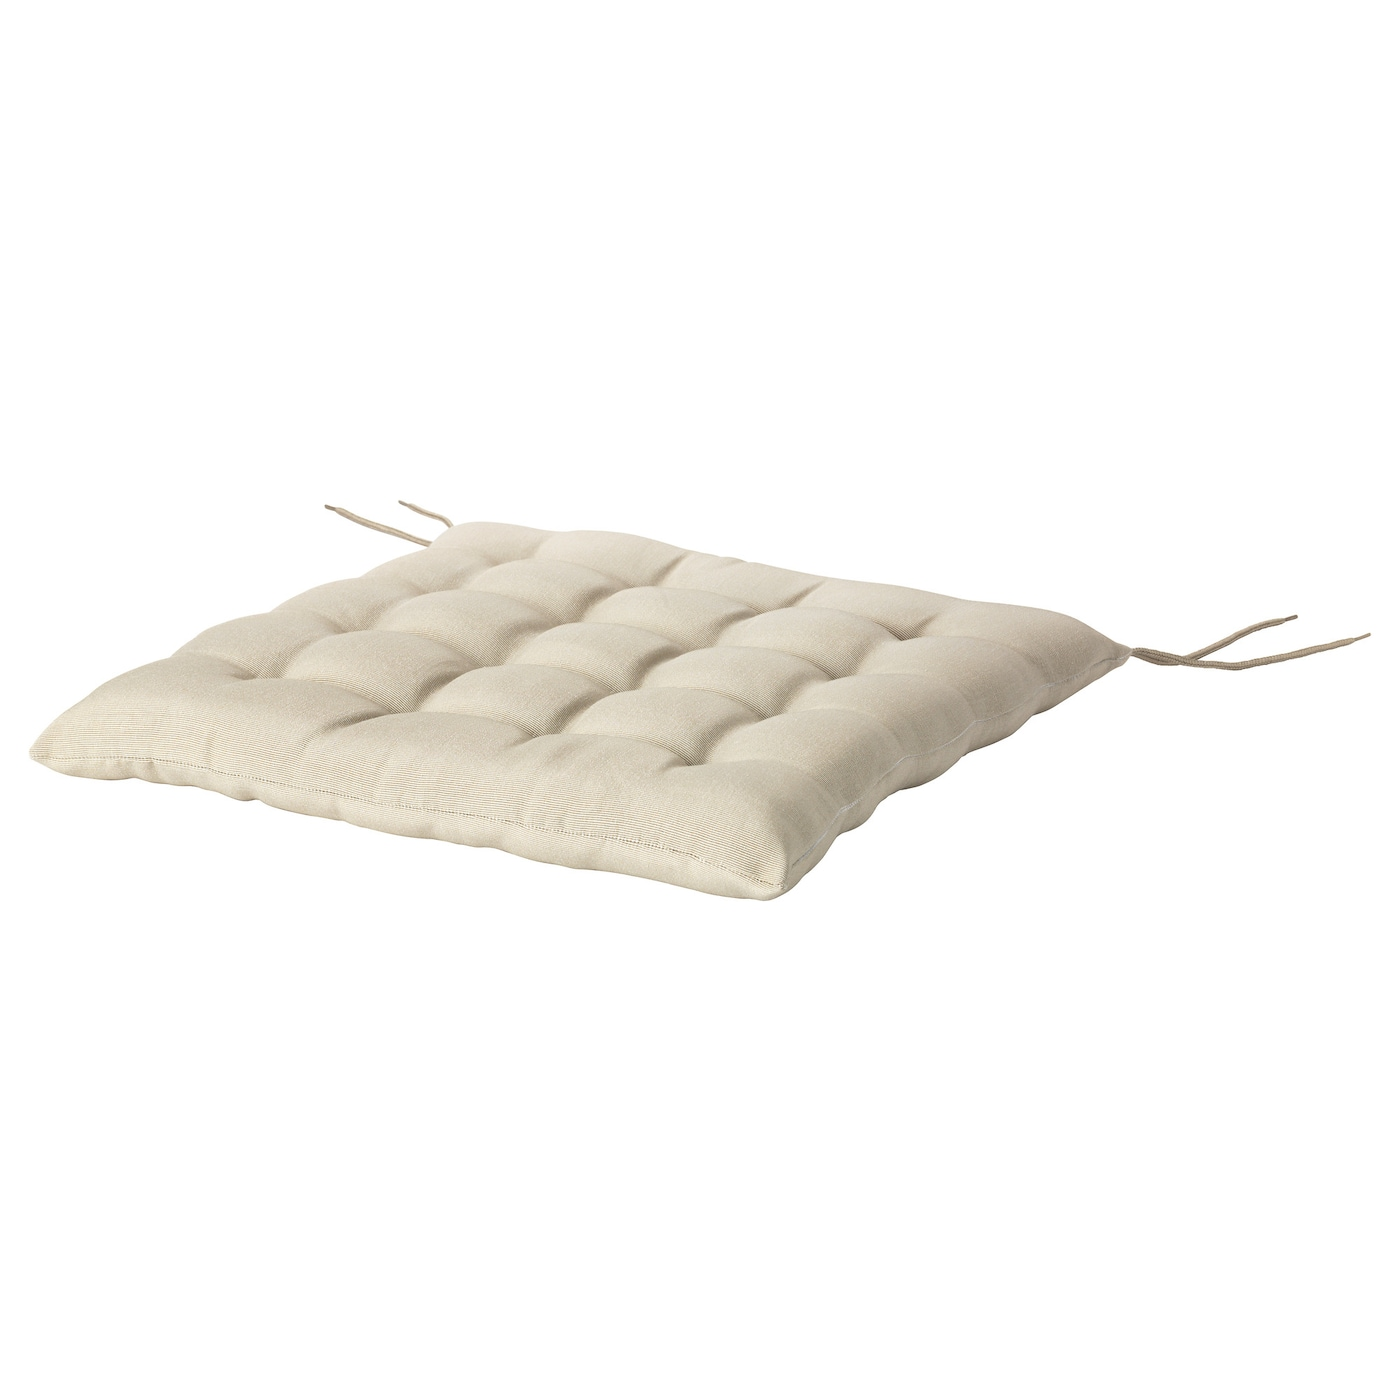 IKEA HALLO Chair Cushion Outdoor Ties Keep The Firmly In Place On